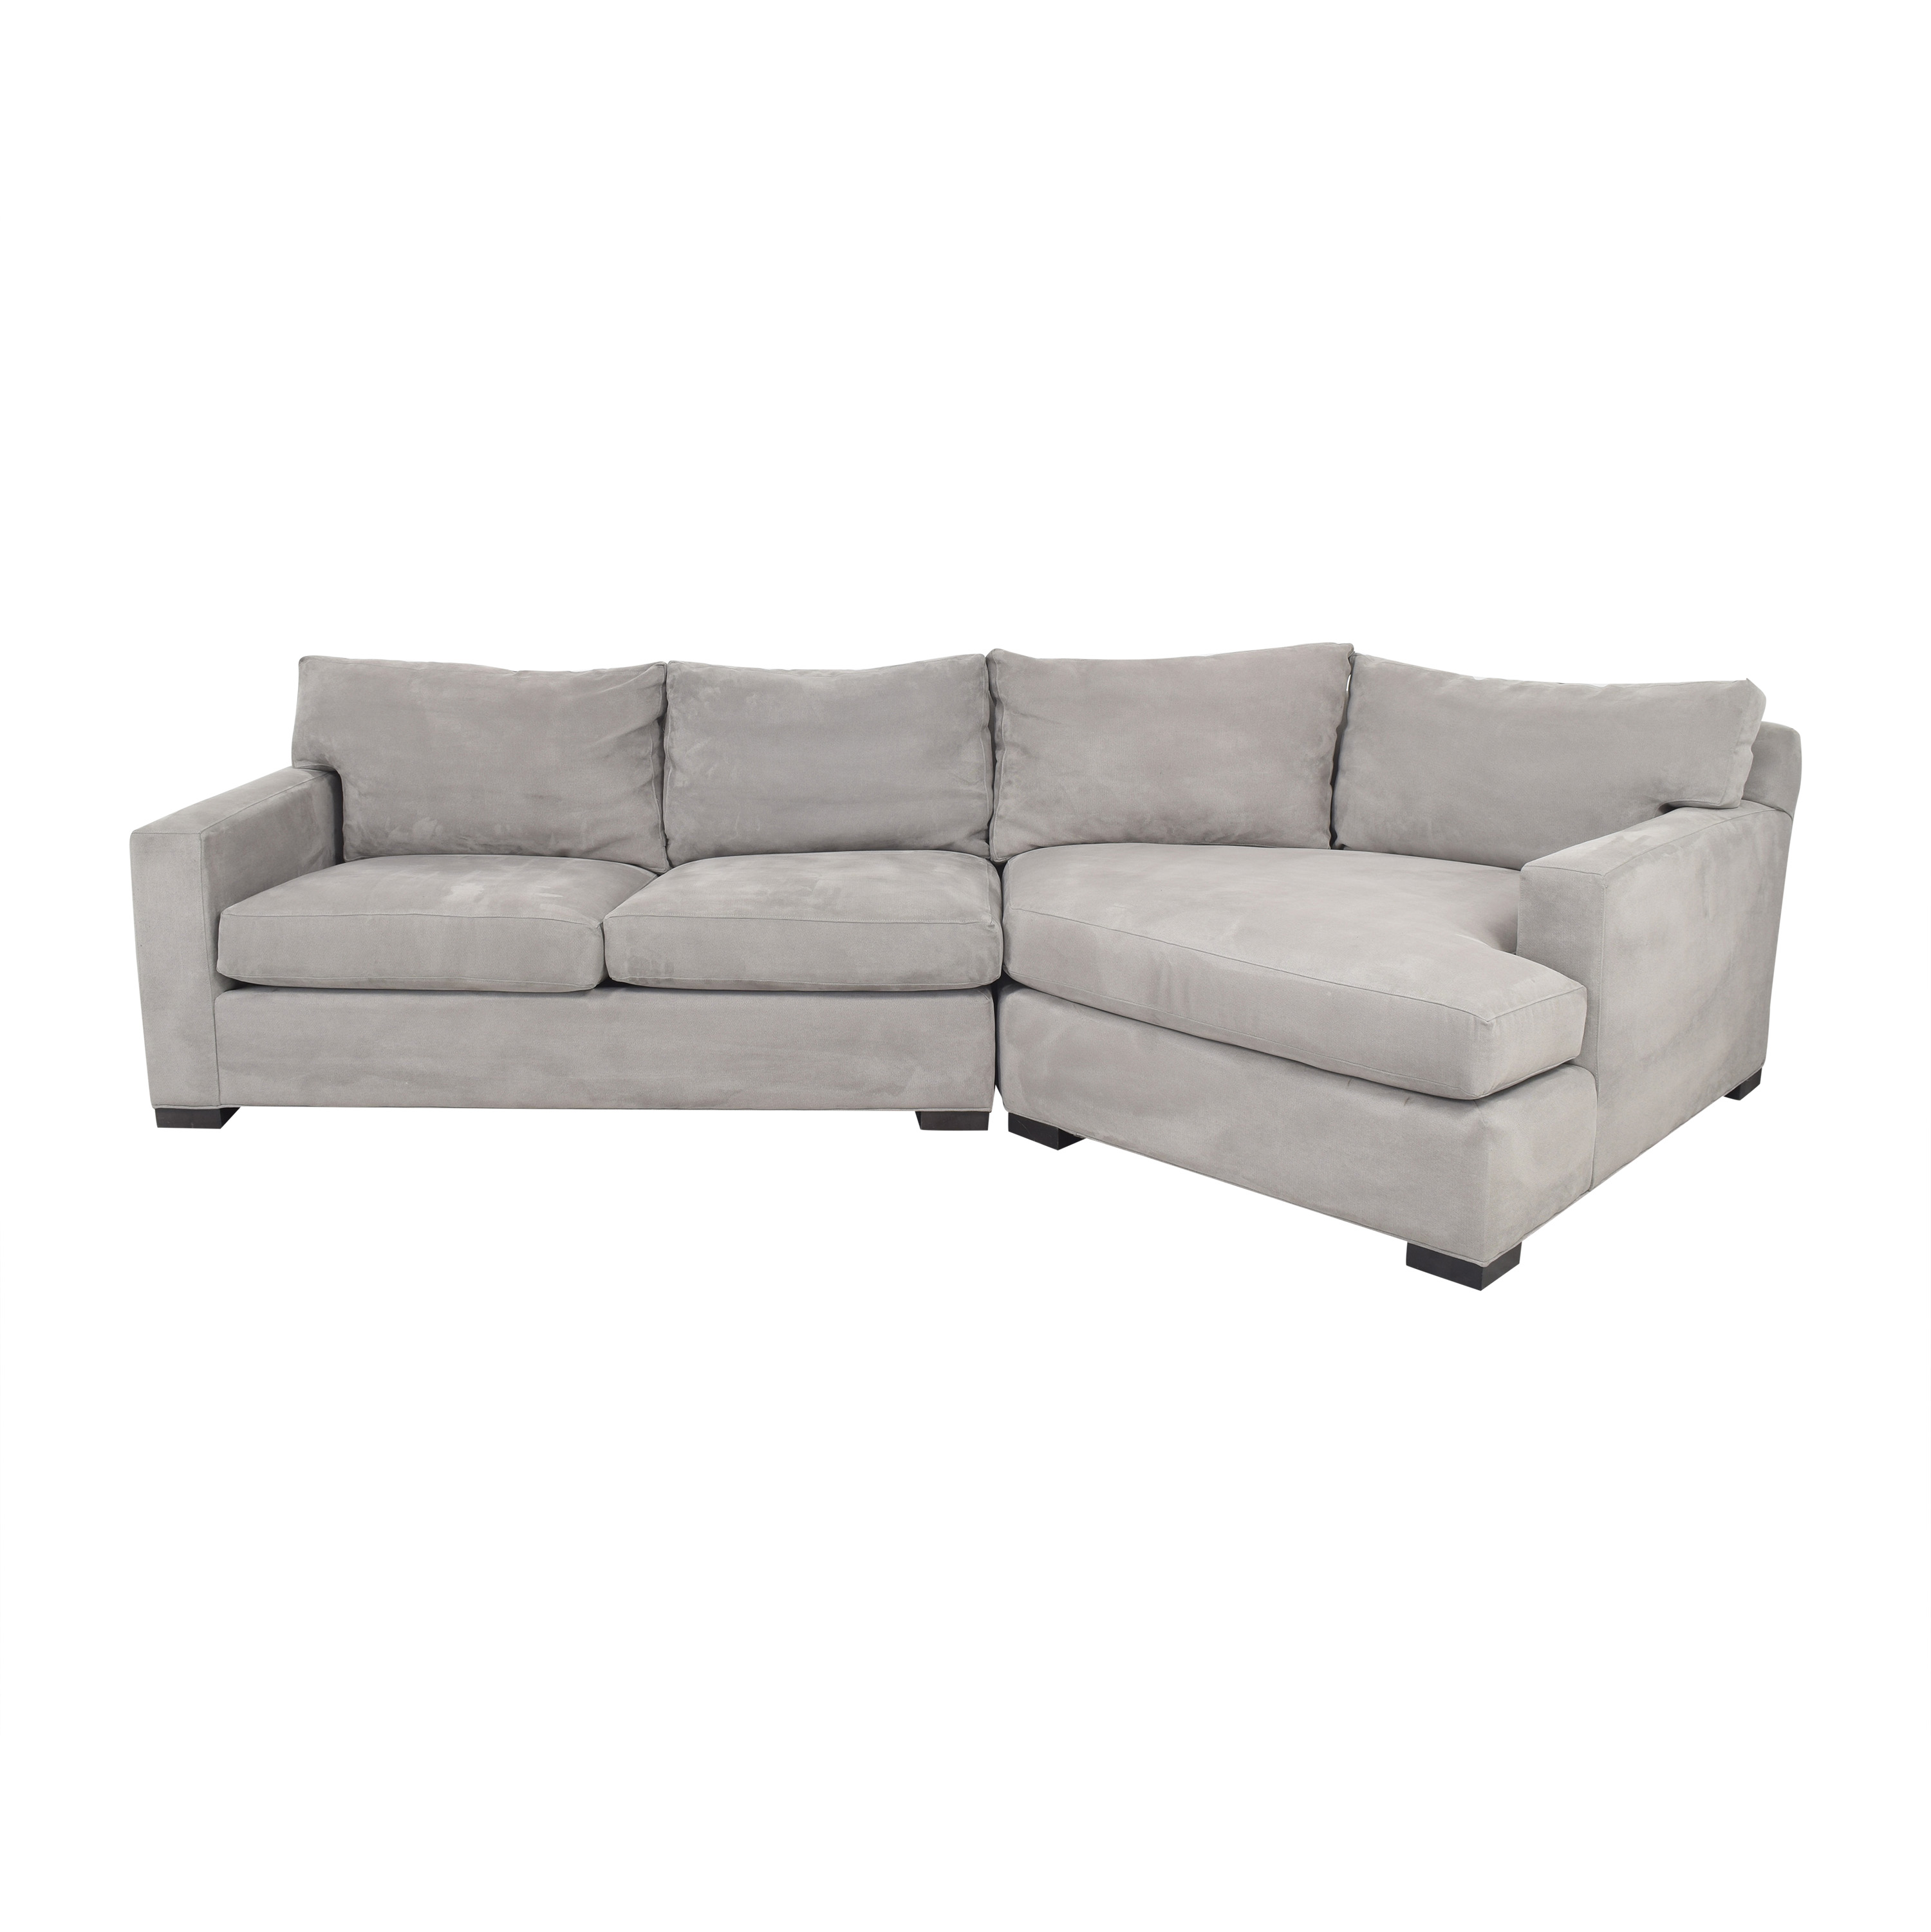 68 off crate barrel crate barrel axis ii 2 piece right arm angled chaise sectional sofa sofas